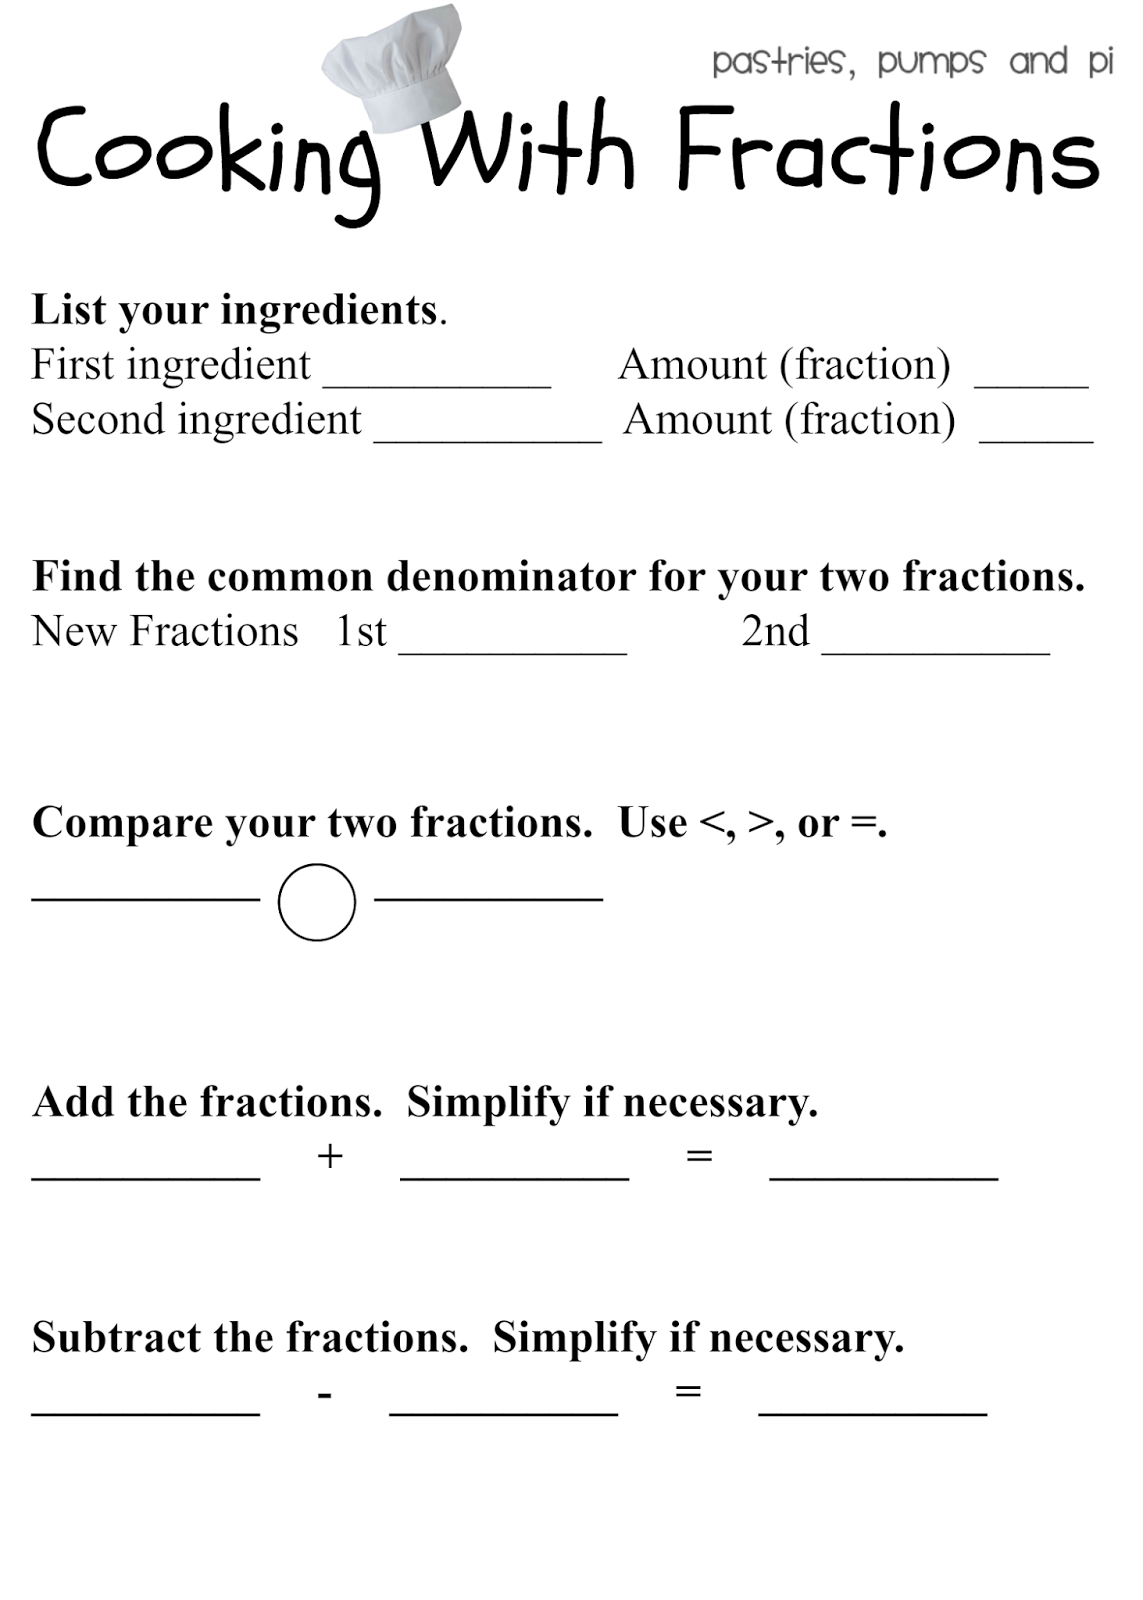 Have Your Child Or Student Use The Grocery Ingredients And Then Fractions From Favorite Recipe This Activity Is Great To Do When Children